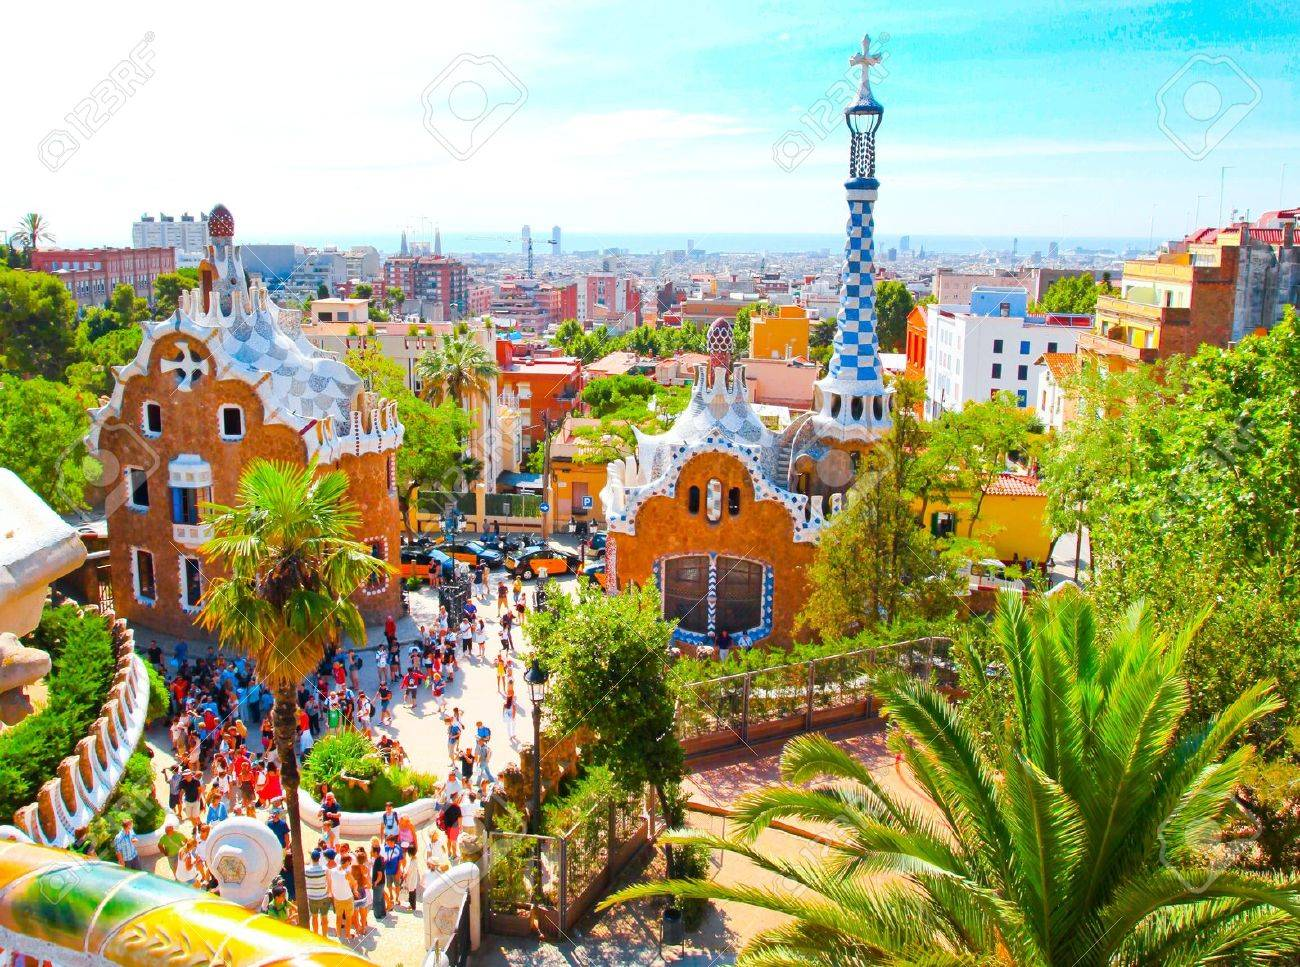 The Famous Summer Park Guell over bright blue sky in Barcelona, Spain Stock Photo - 19484447